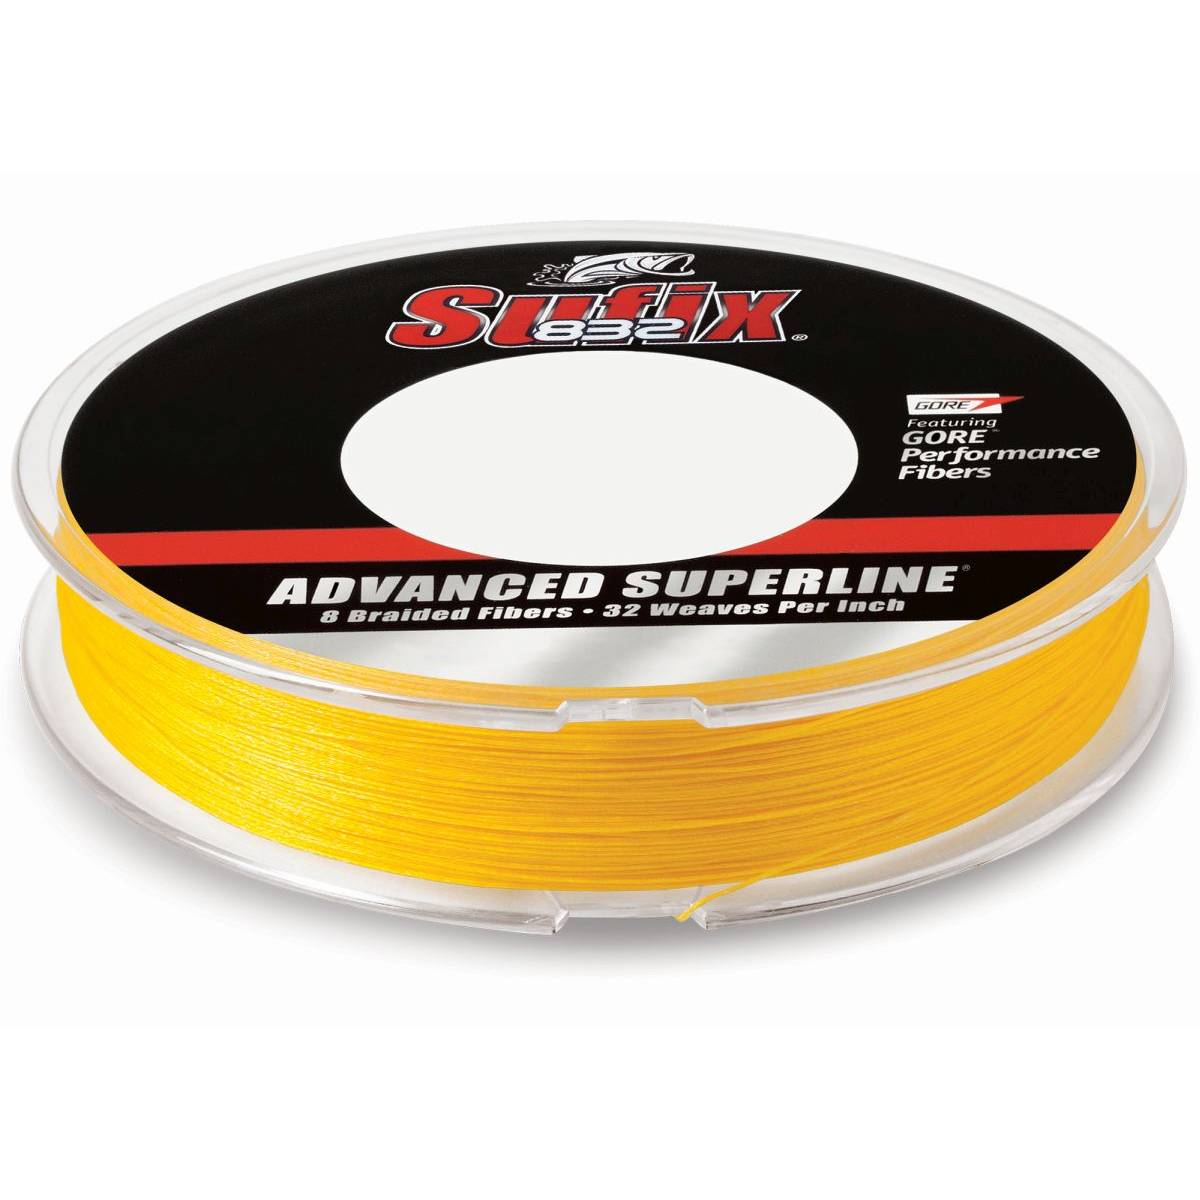 Sufix 832 Braided Line; This is part of the Braided collection offered from Fishin' My Best Life - fishinmybestlife.com